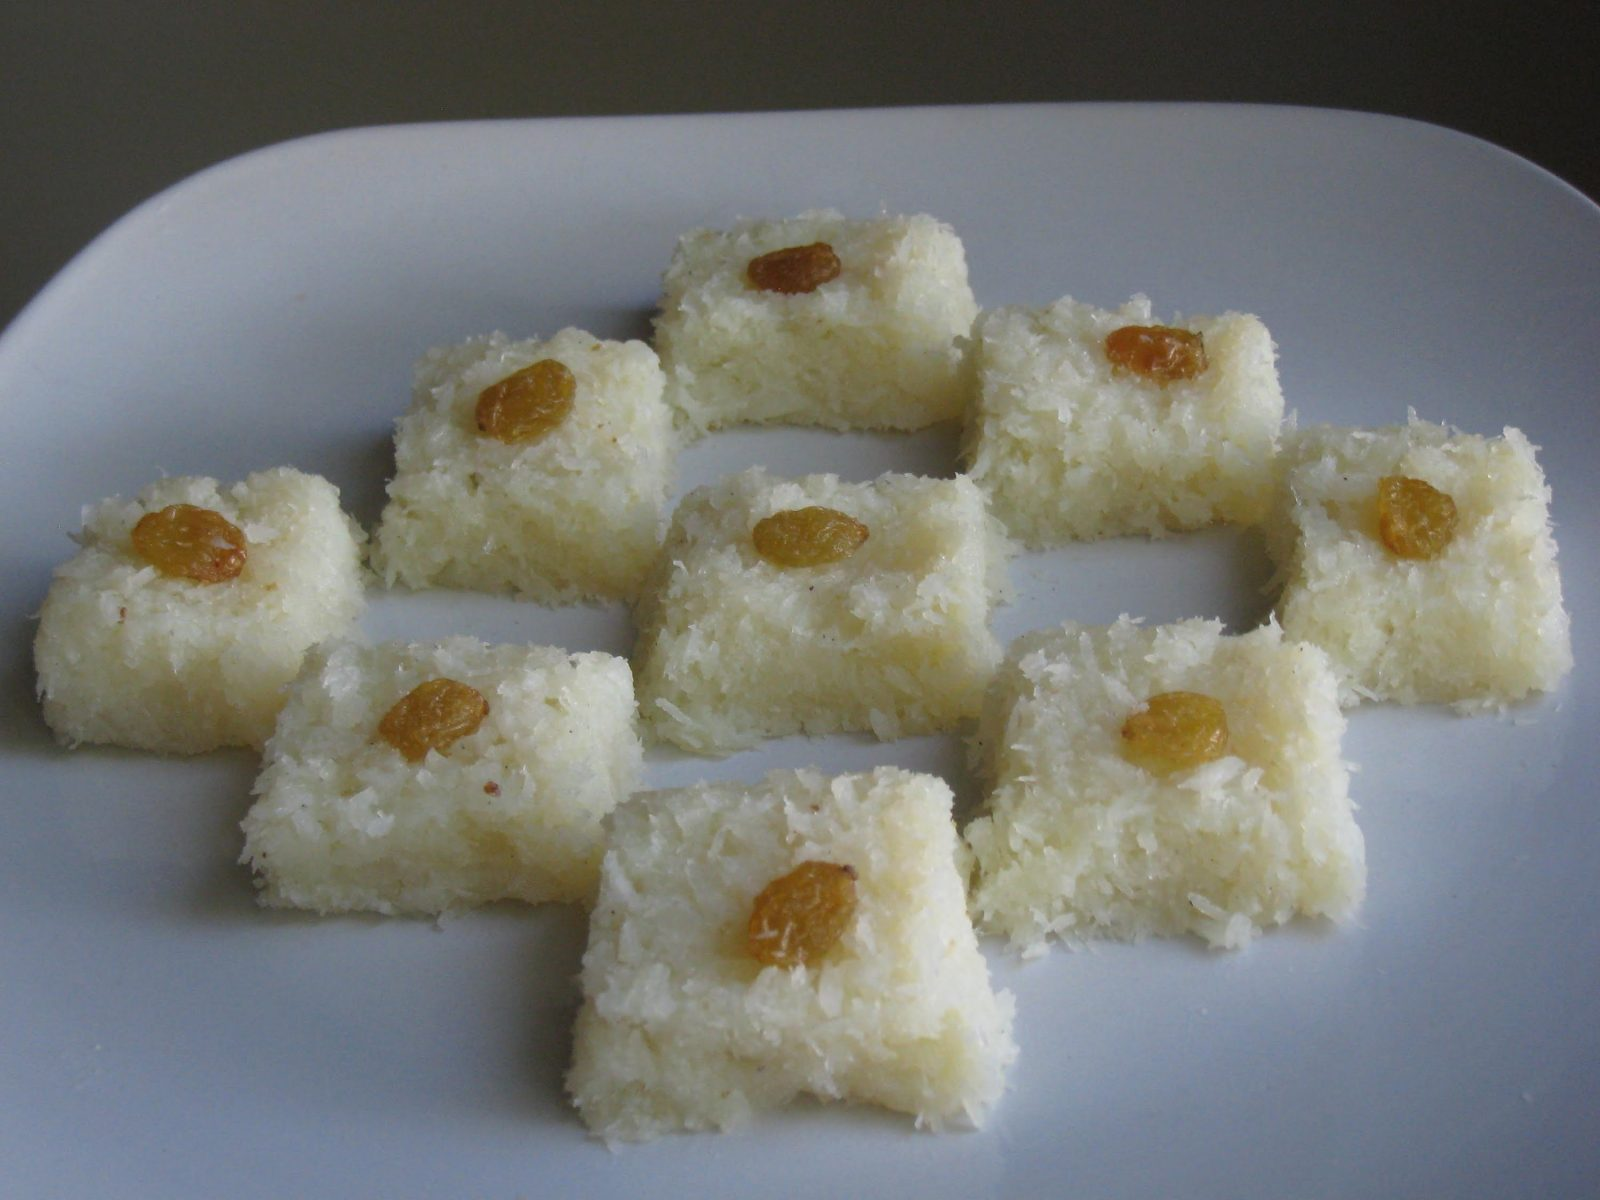 Coconut (Narikel) Barfi from Arisha's Kitchen